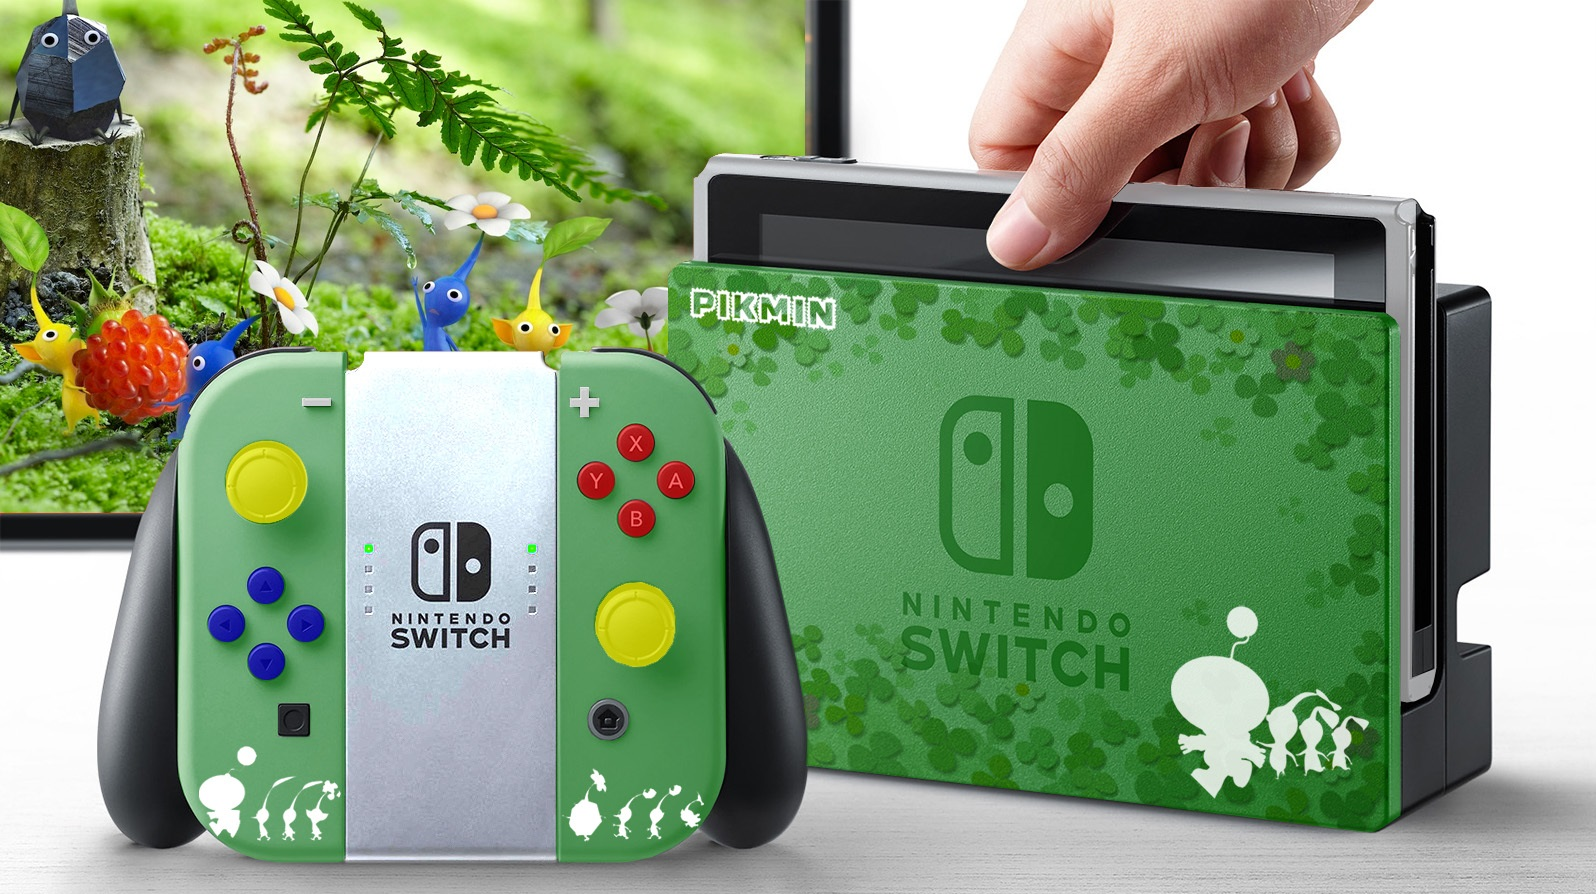 nintendo-switch-pikmin